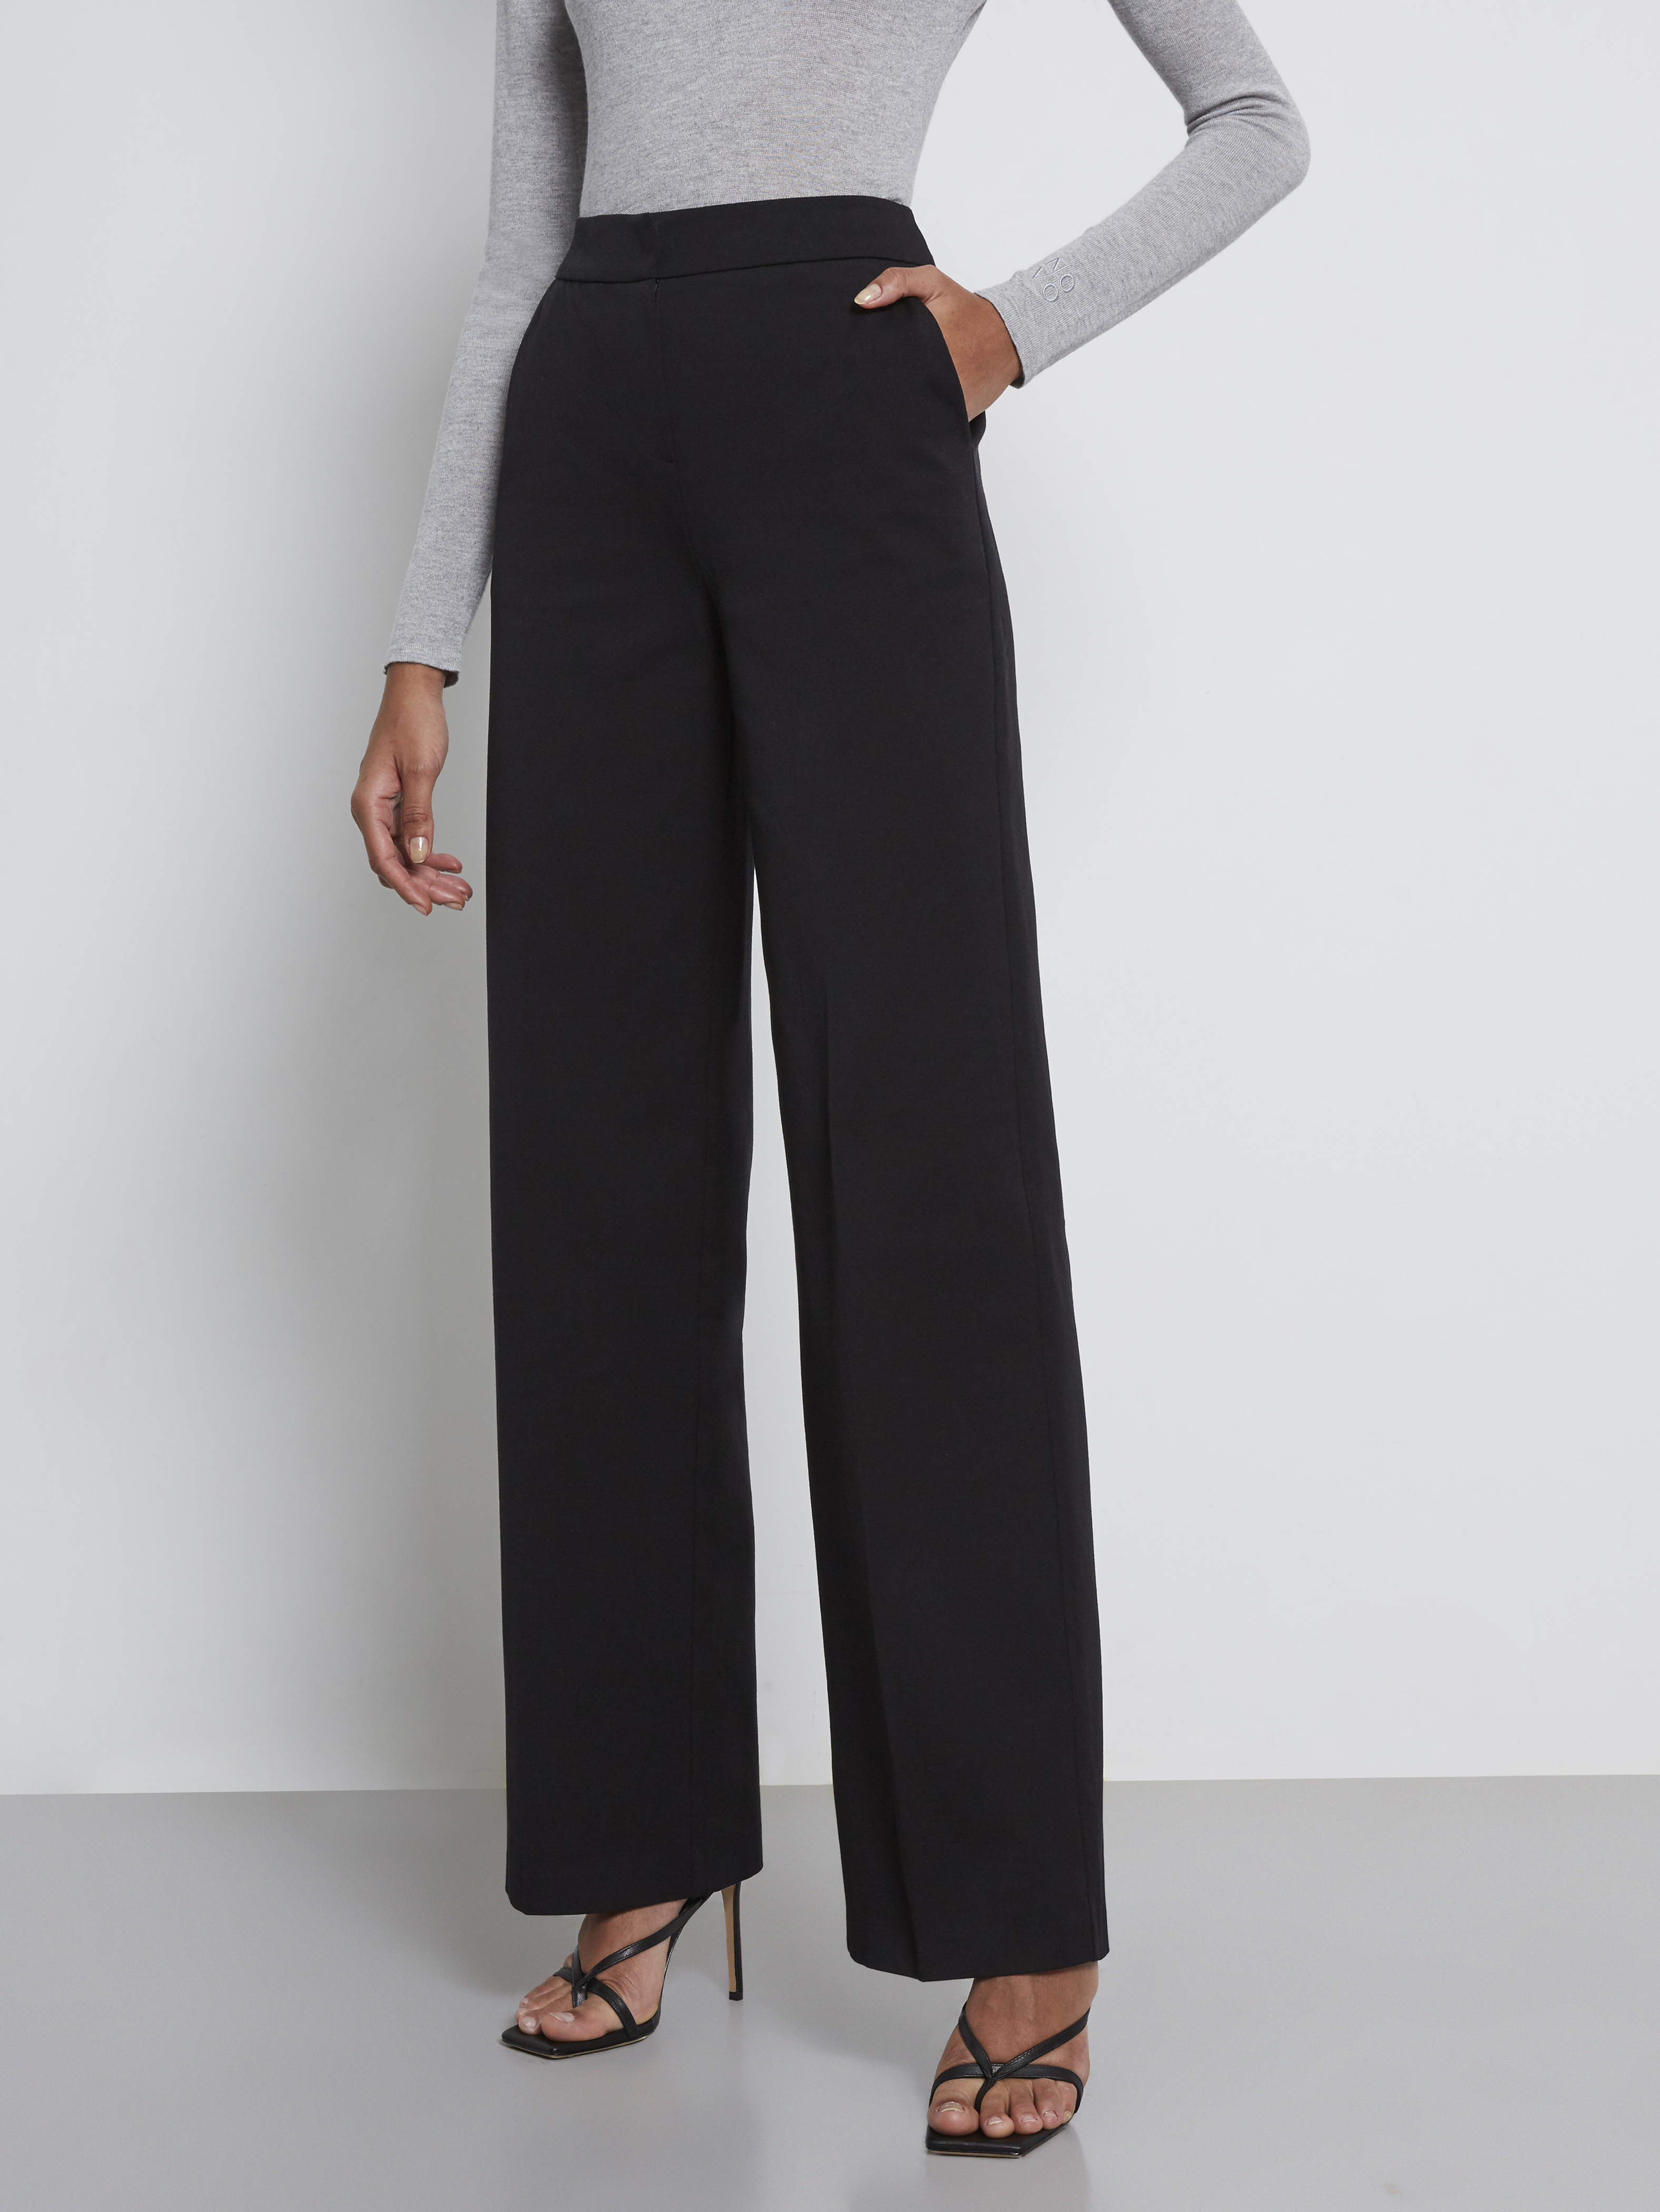 Wide Leg Cotton Pants with Pockets Perfect if you want to elevate your whole look for the day.